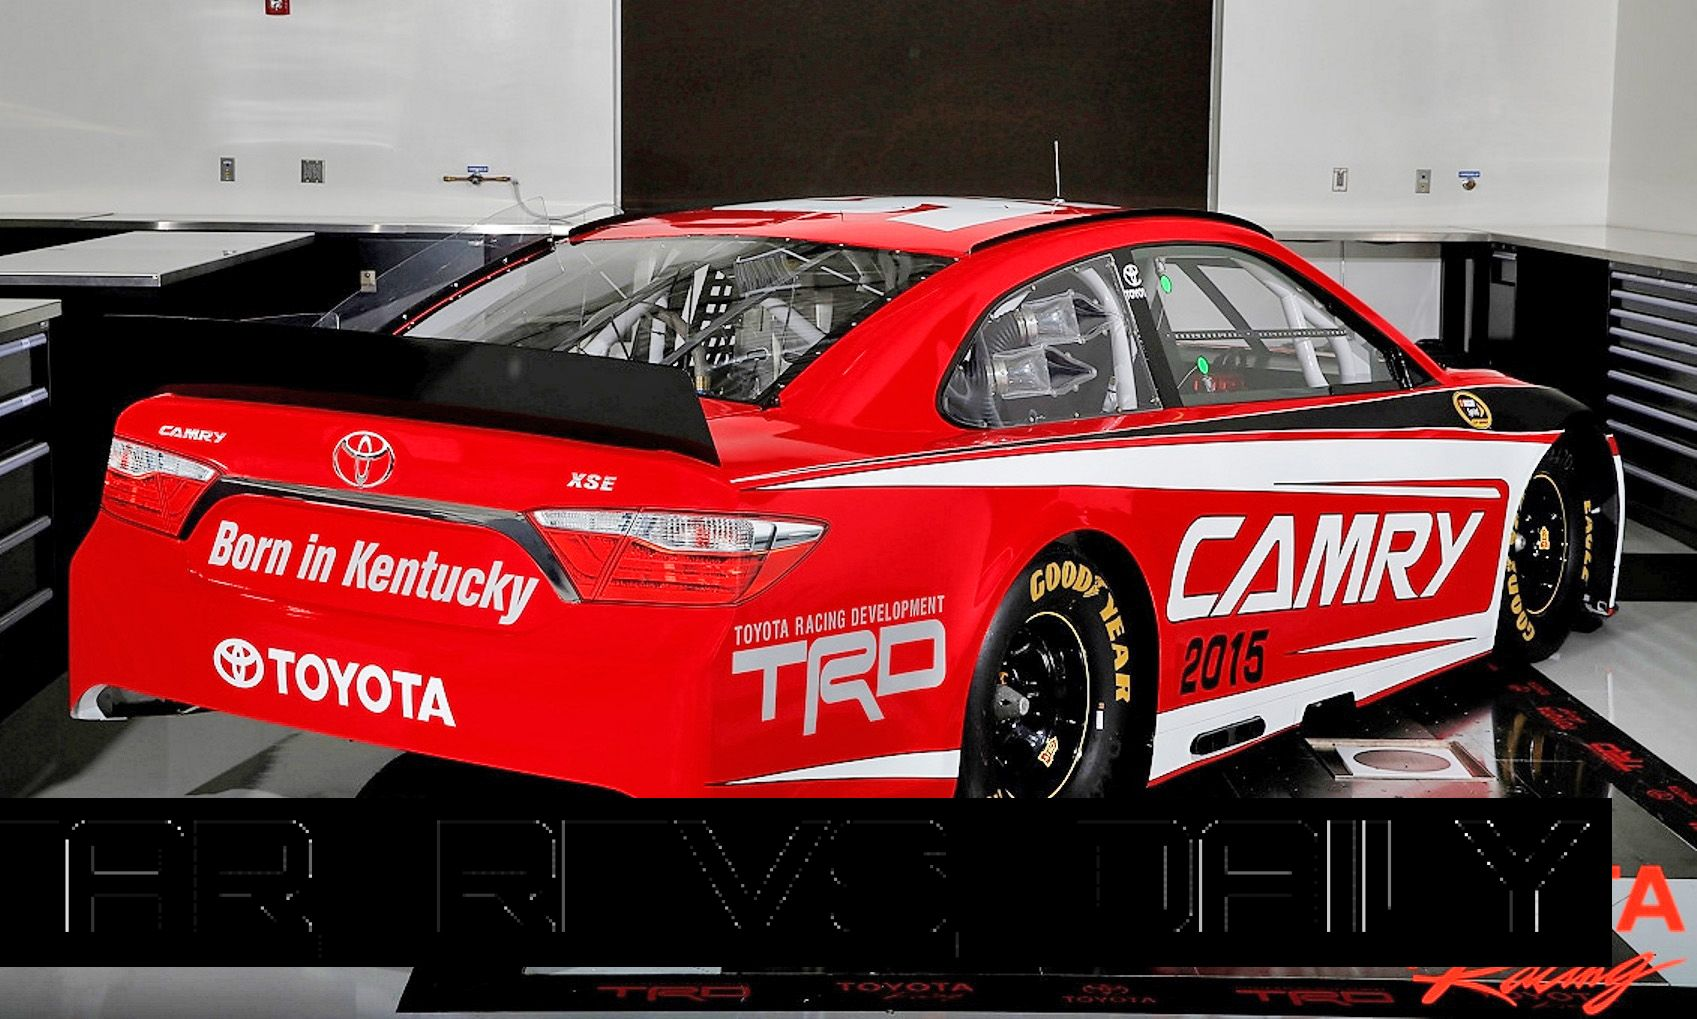 Gen-6 Toyota Camry NASCAR Revealed Ahead of 2015 Season